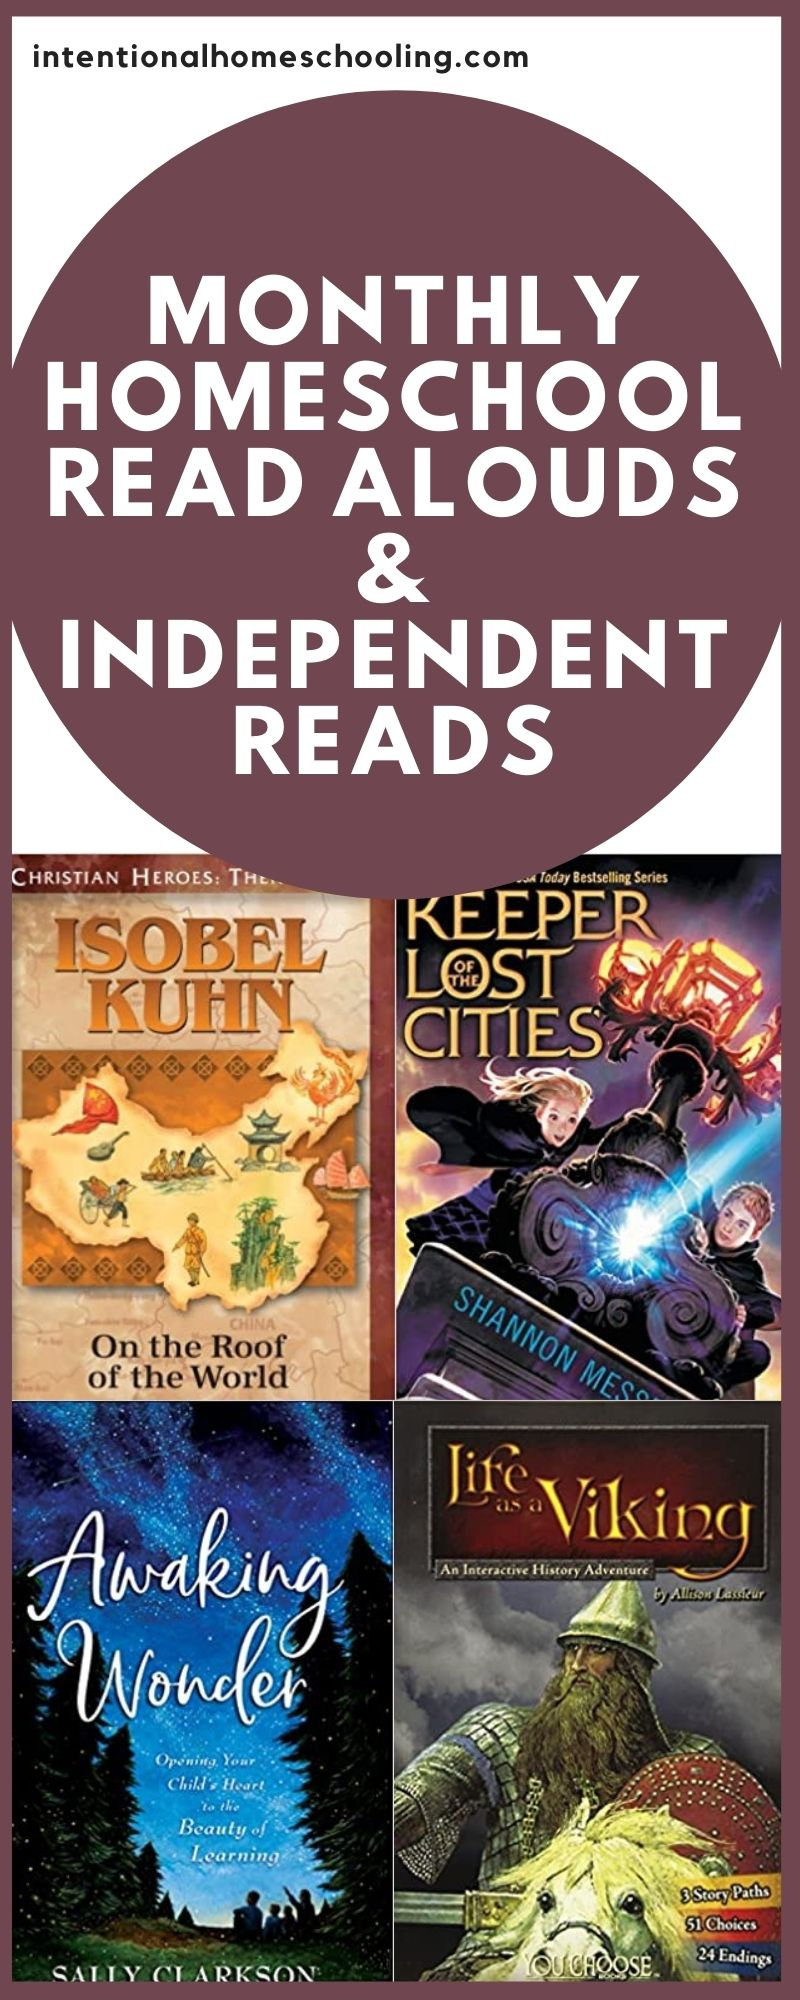 Our Homeschool Monthly Reading Wrap Up - our monthly read alouds and independent reads